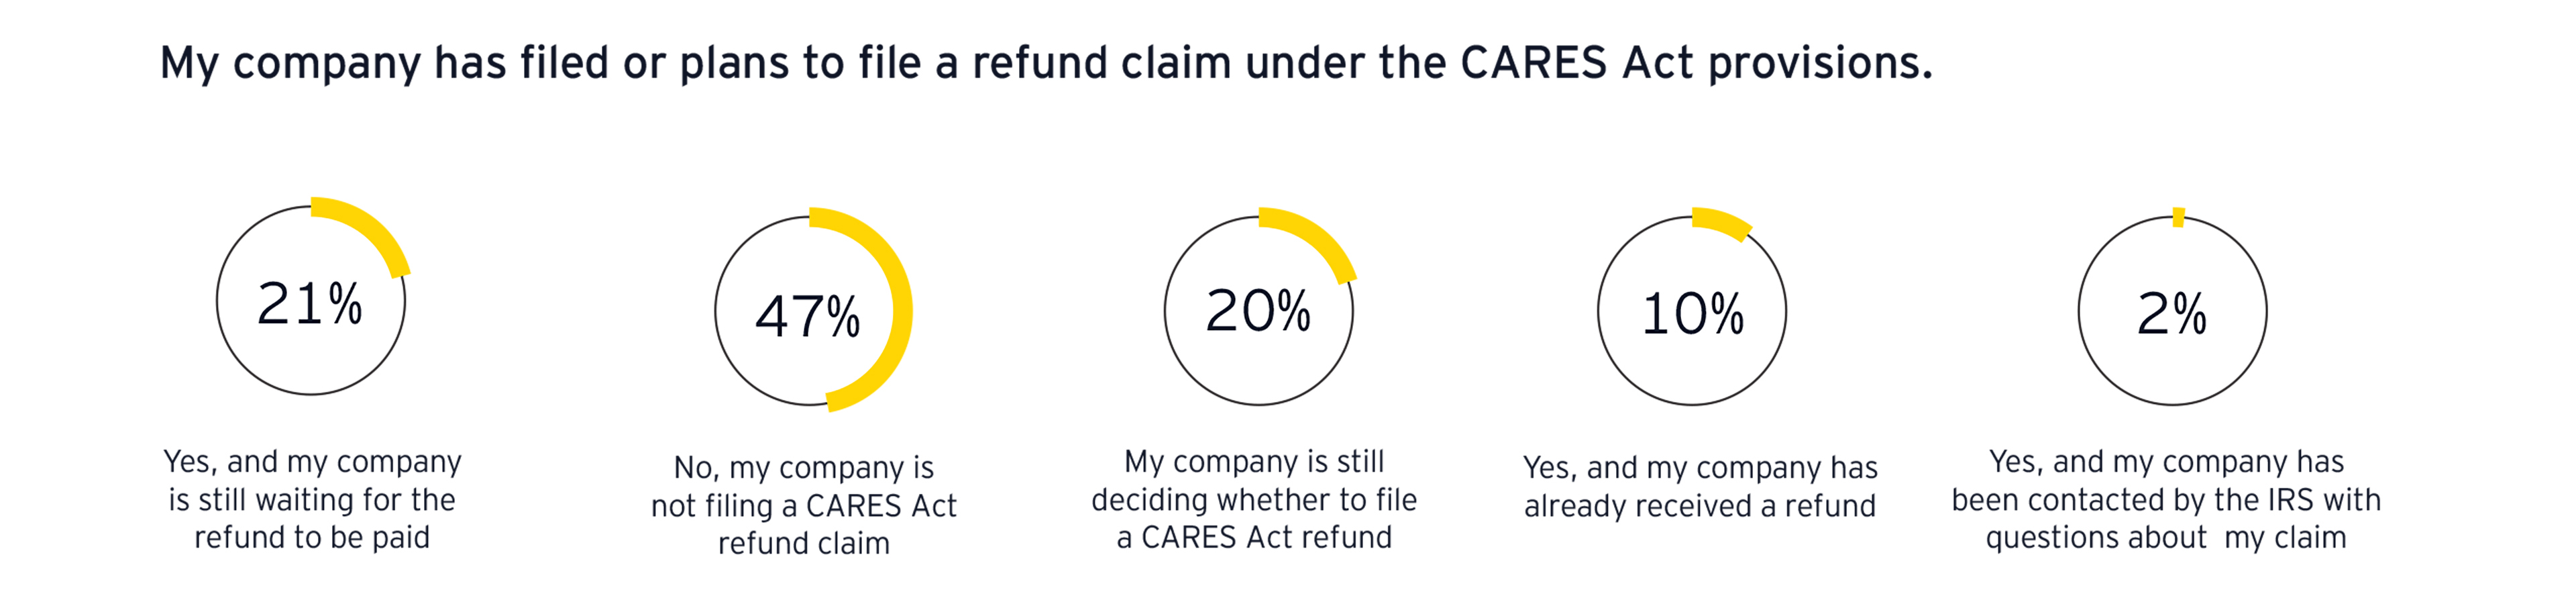 ey-filed-a-refund-claim-under-the-cares-act-2